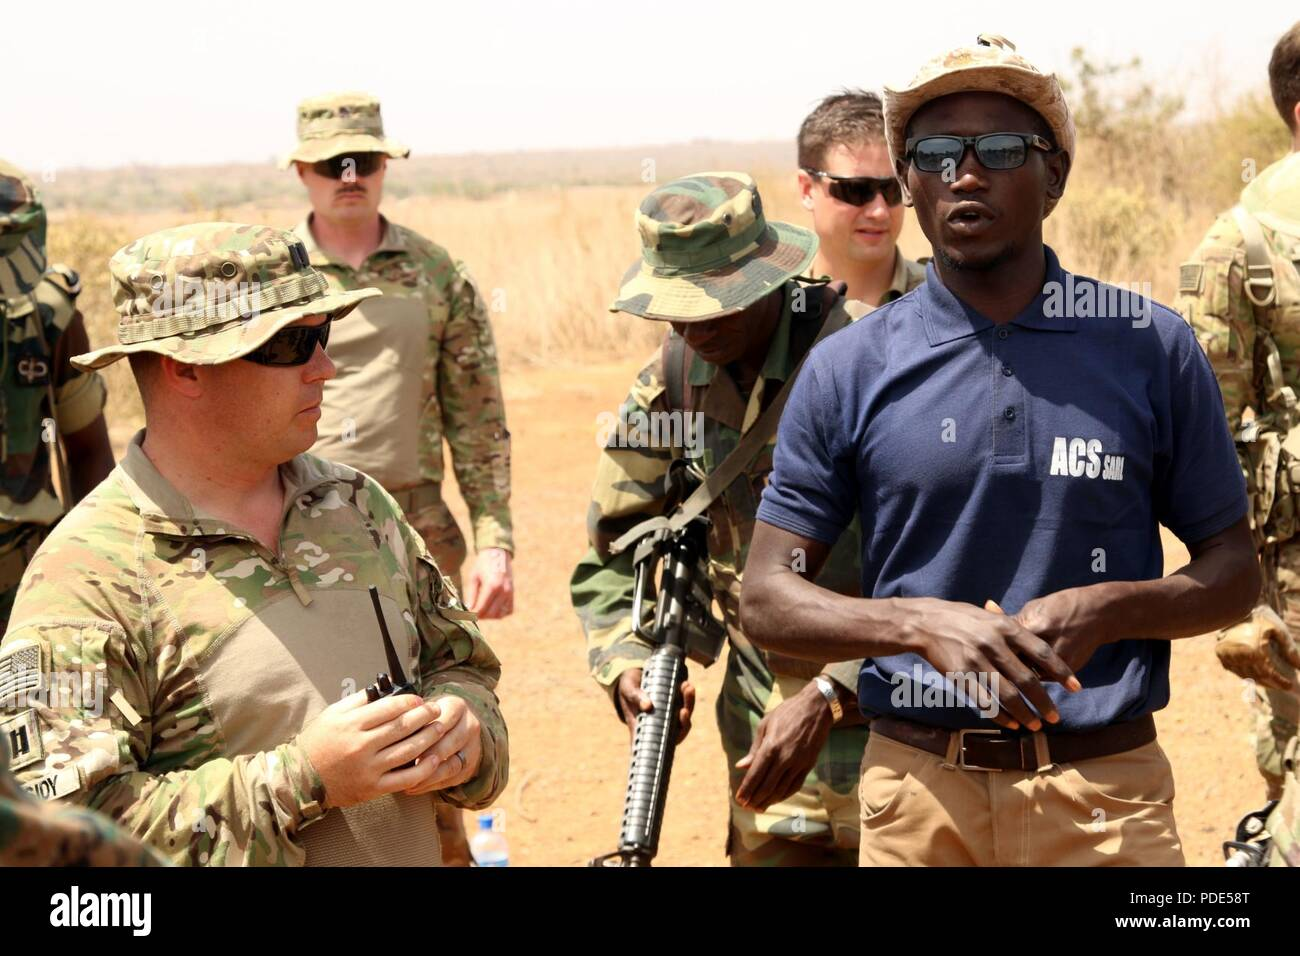 Birame Faye, an Interpreter for the Senegalese Army is responsilble for translating French to English and English to French between Soldiers of 3rd Squadron, 71st Cavalry Regiment, 10th Mountain Division and the Senegalese Army. This is absolutely critical to a successful mission. 10th Mountain began training instructors of the Senegalese Army April 30, 2018 to better prepare them for leading their upcoming Advanced Infantry Training. - Stock Image